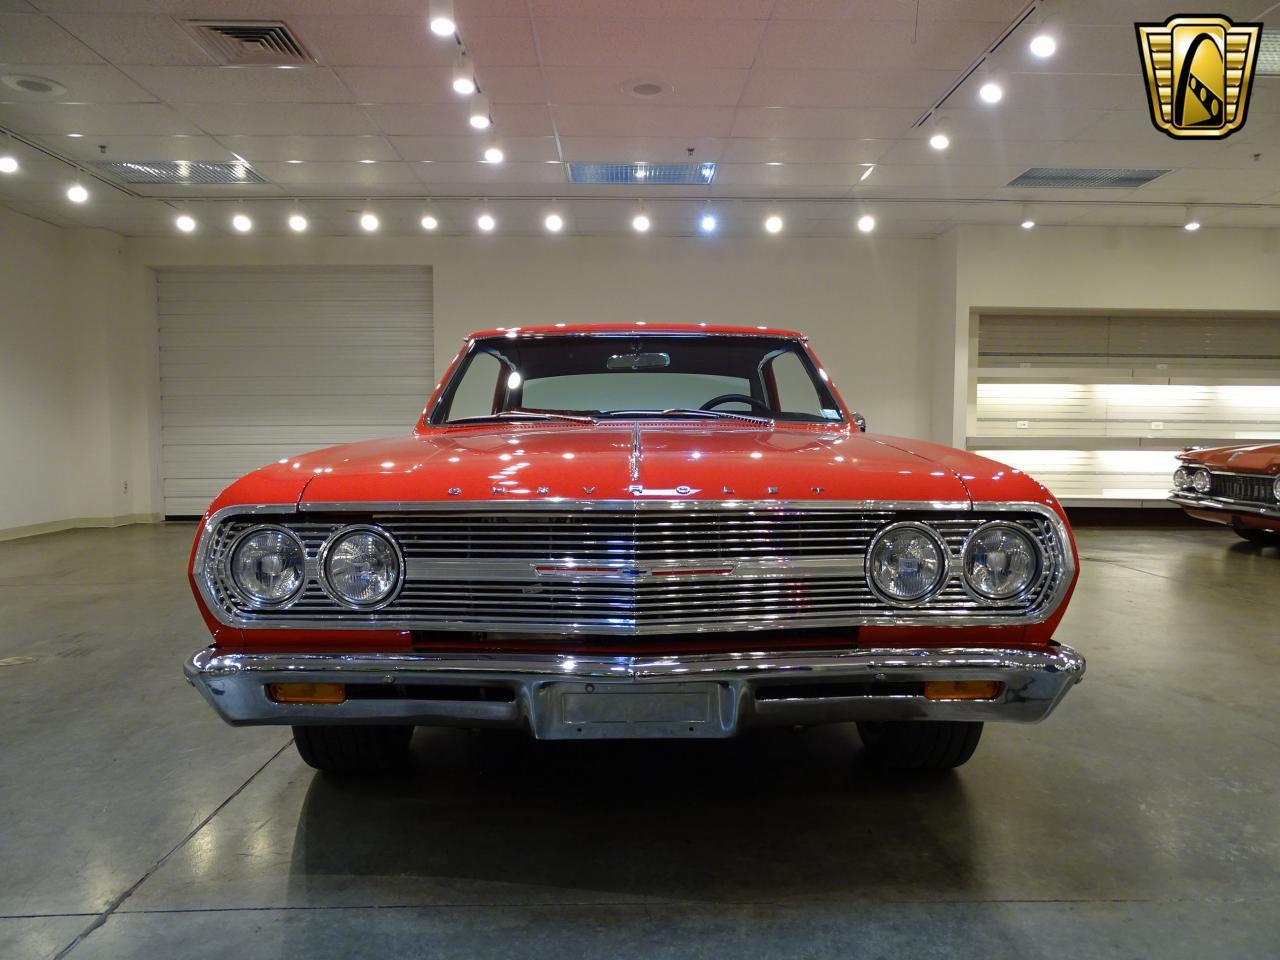 Large Picture of Classic 1965 Chevelle located in Illinois - $123,000.00 Offered by Gateway Classic Cars - St. Louis - KE3S